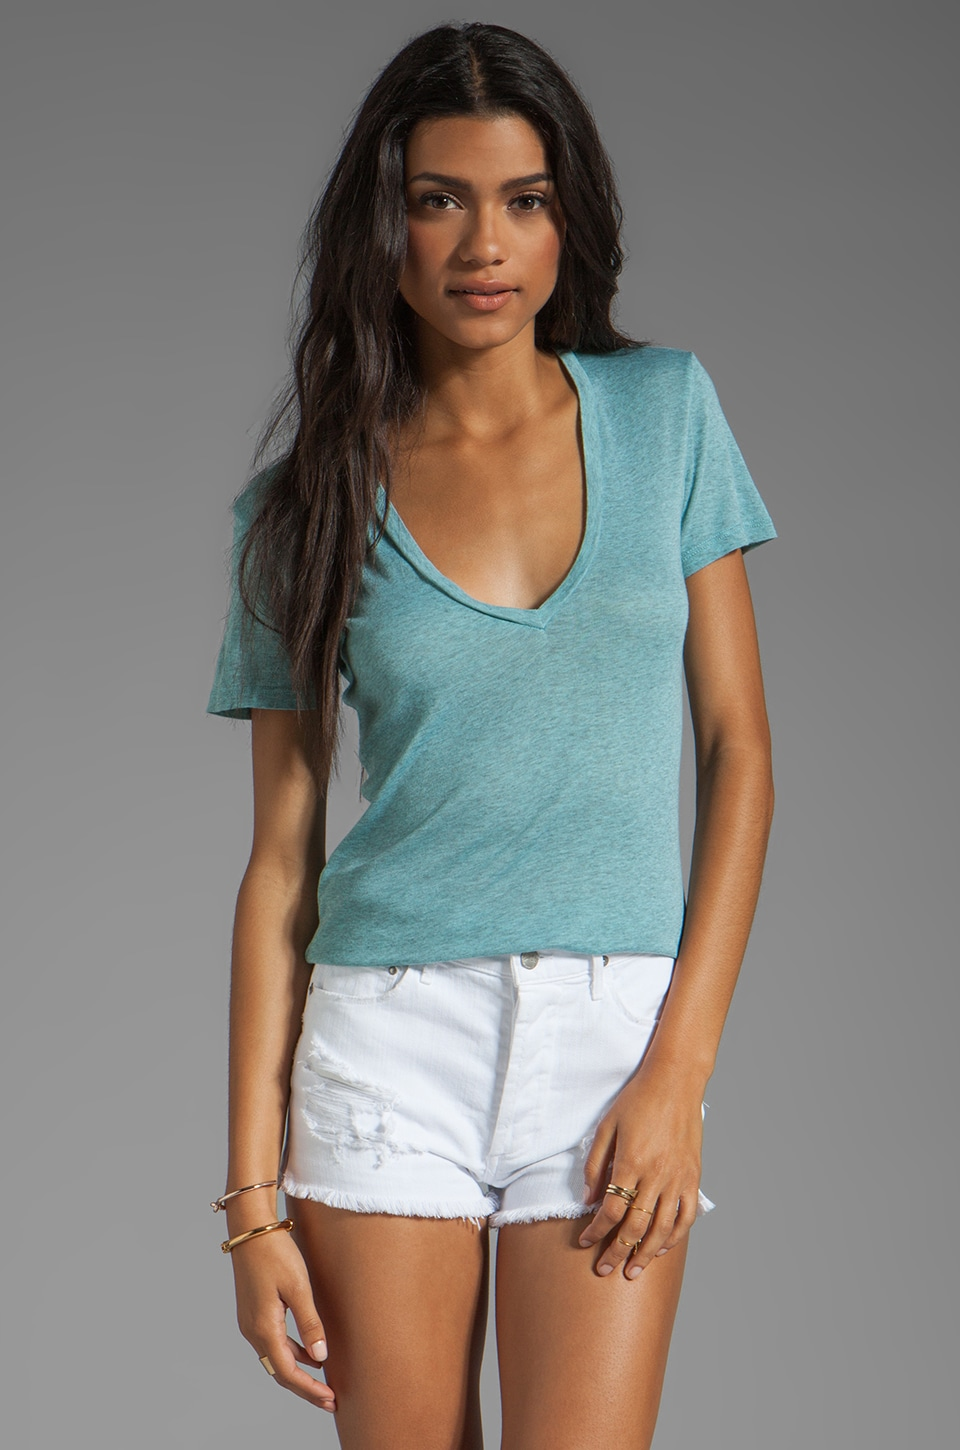 MONROW Baby Heather Tissue V-Neck in Spearmint